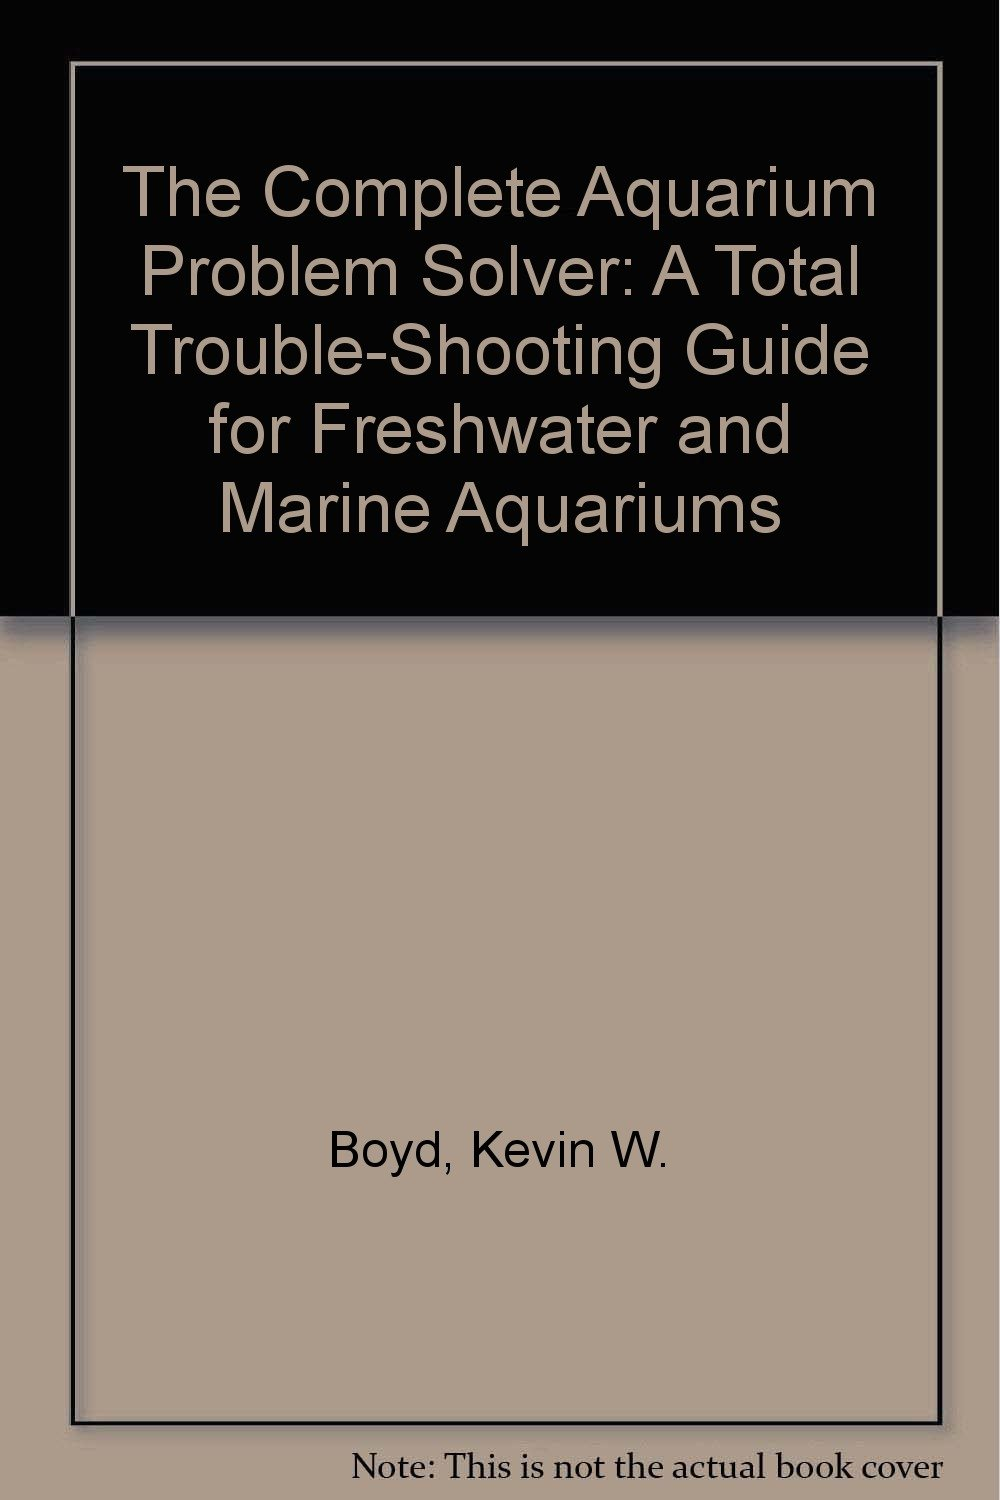 The Complete Aquarium Problem Solver: A Total Trouble-Shooting Guide for Freshwater and Marine Aquariums